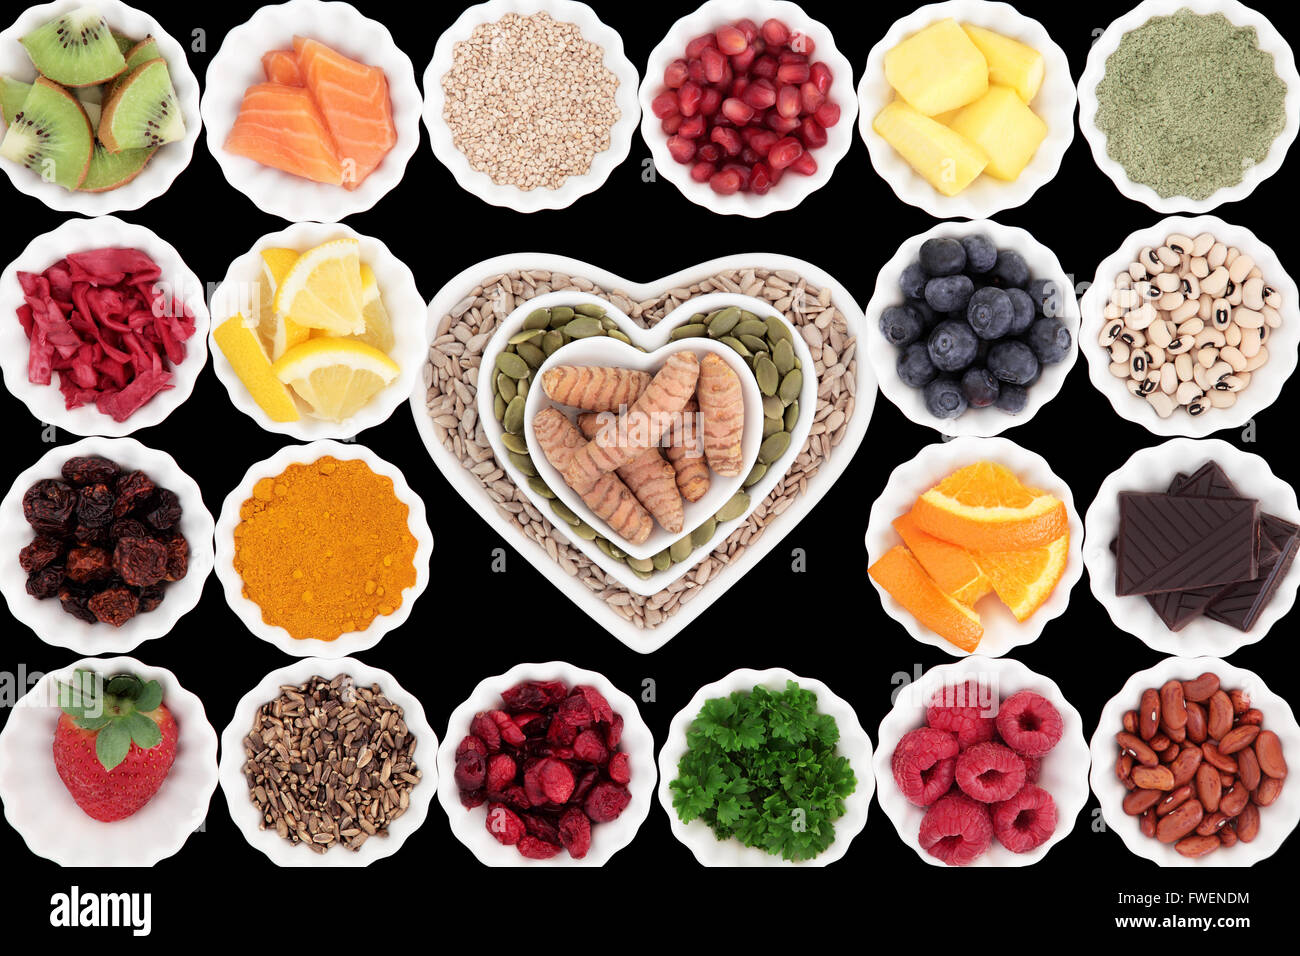 Health and super food selection in porcelain crinkle bowls over black background. High in vitamins and antioxidants. - Stock Image